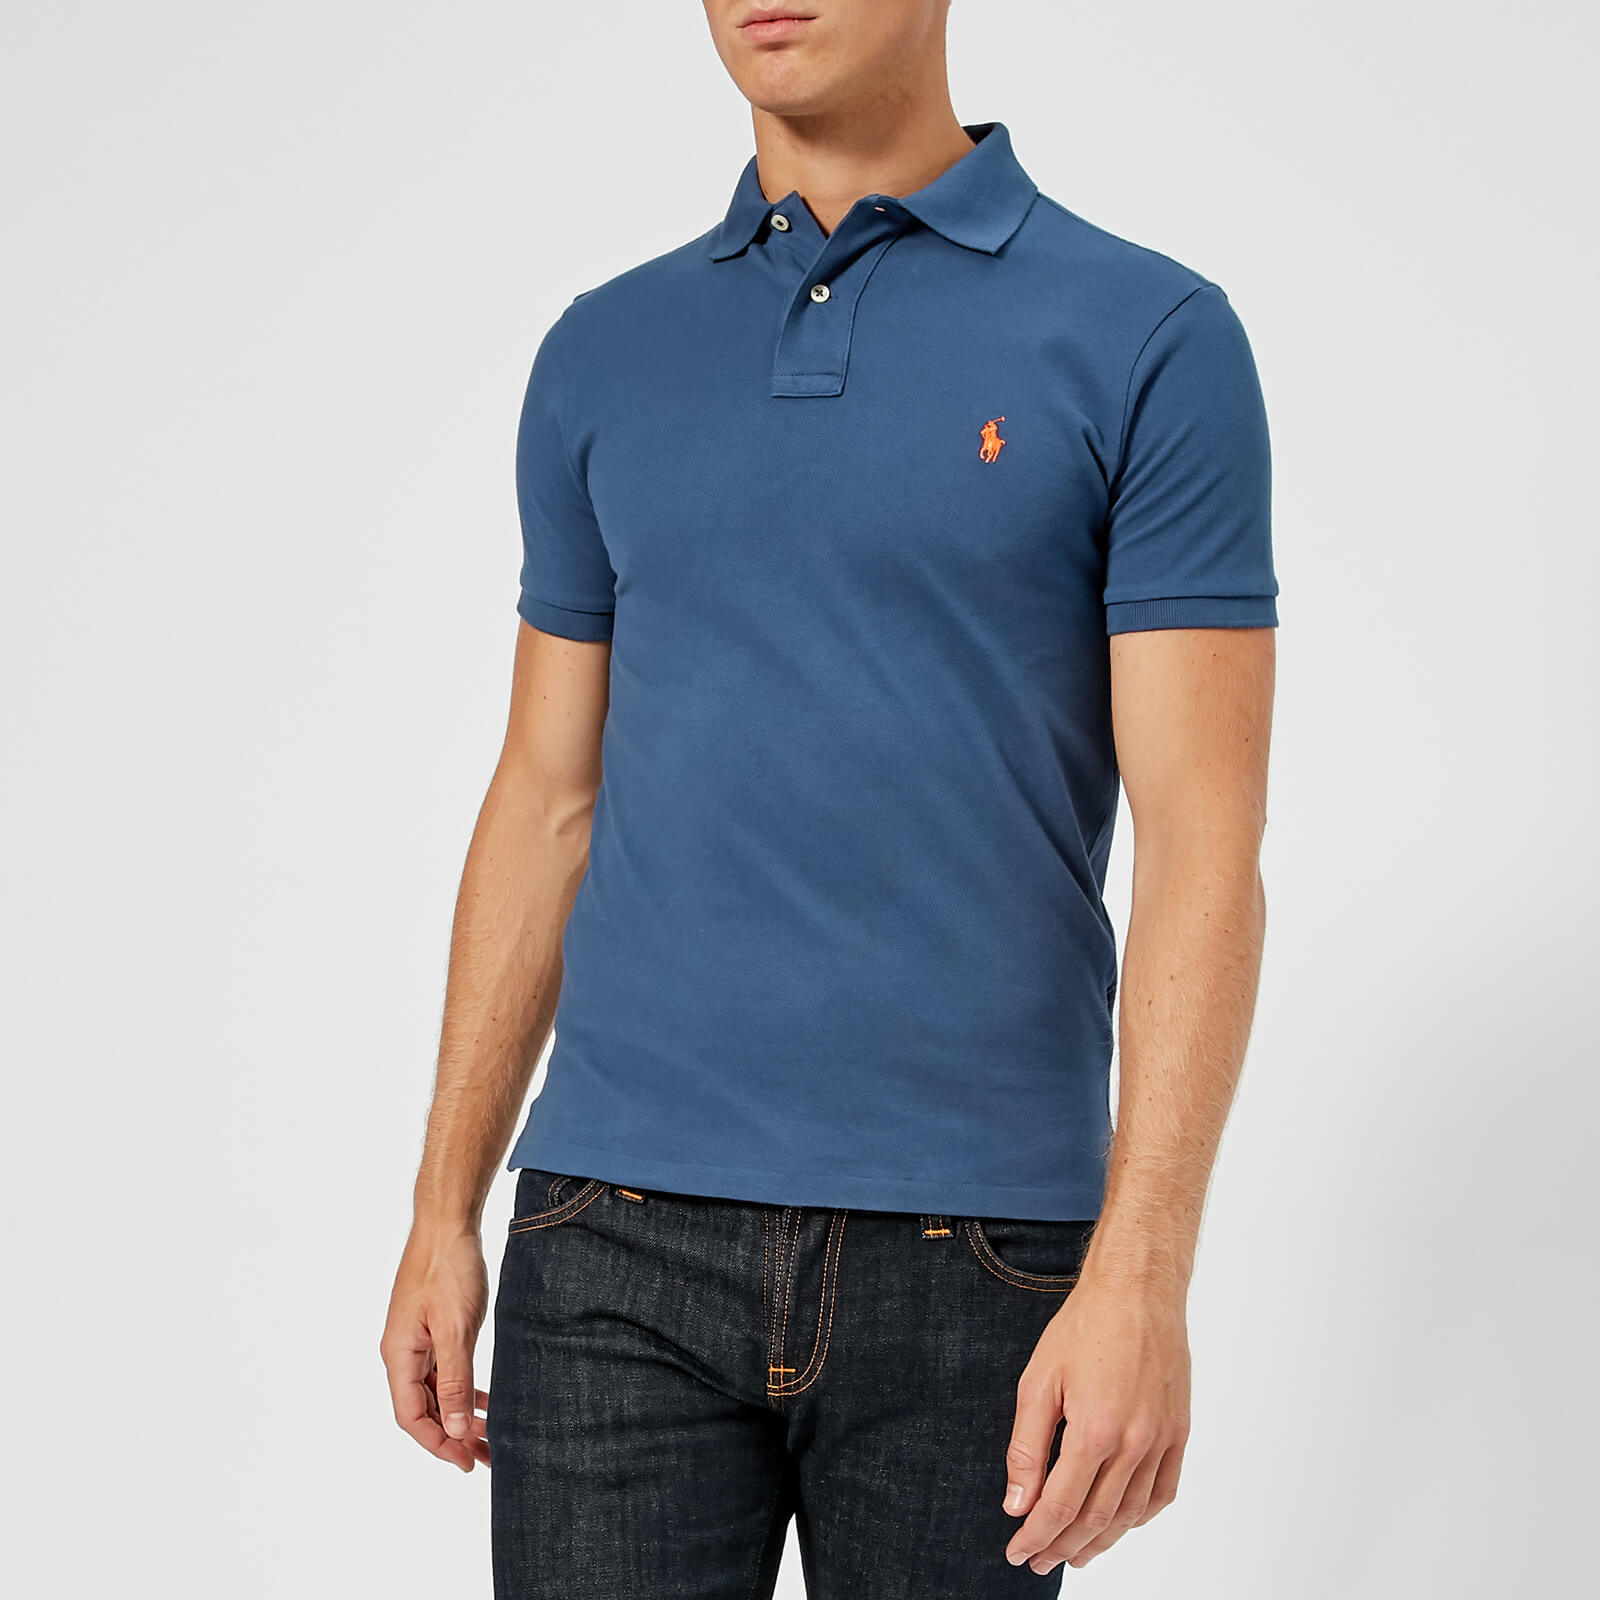 67a0774756f4e4 Polo Ralph Lauren Men's Slim Fit Mesh Polo Shirt - Light Navy - Free UK  Delivery over £50